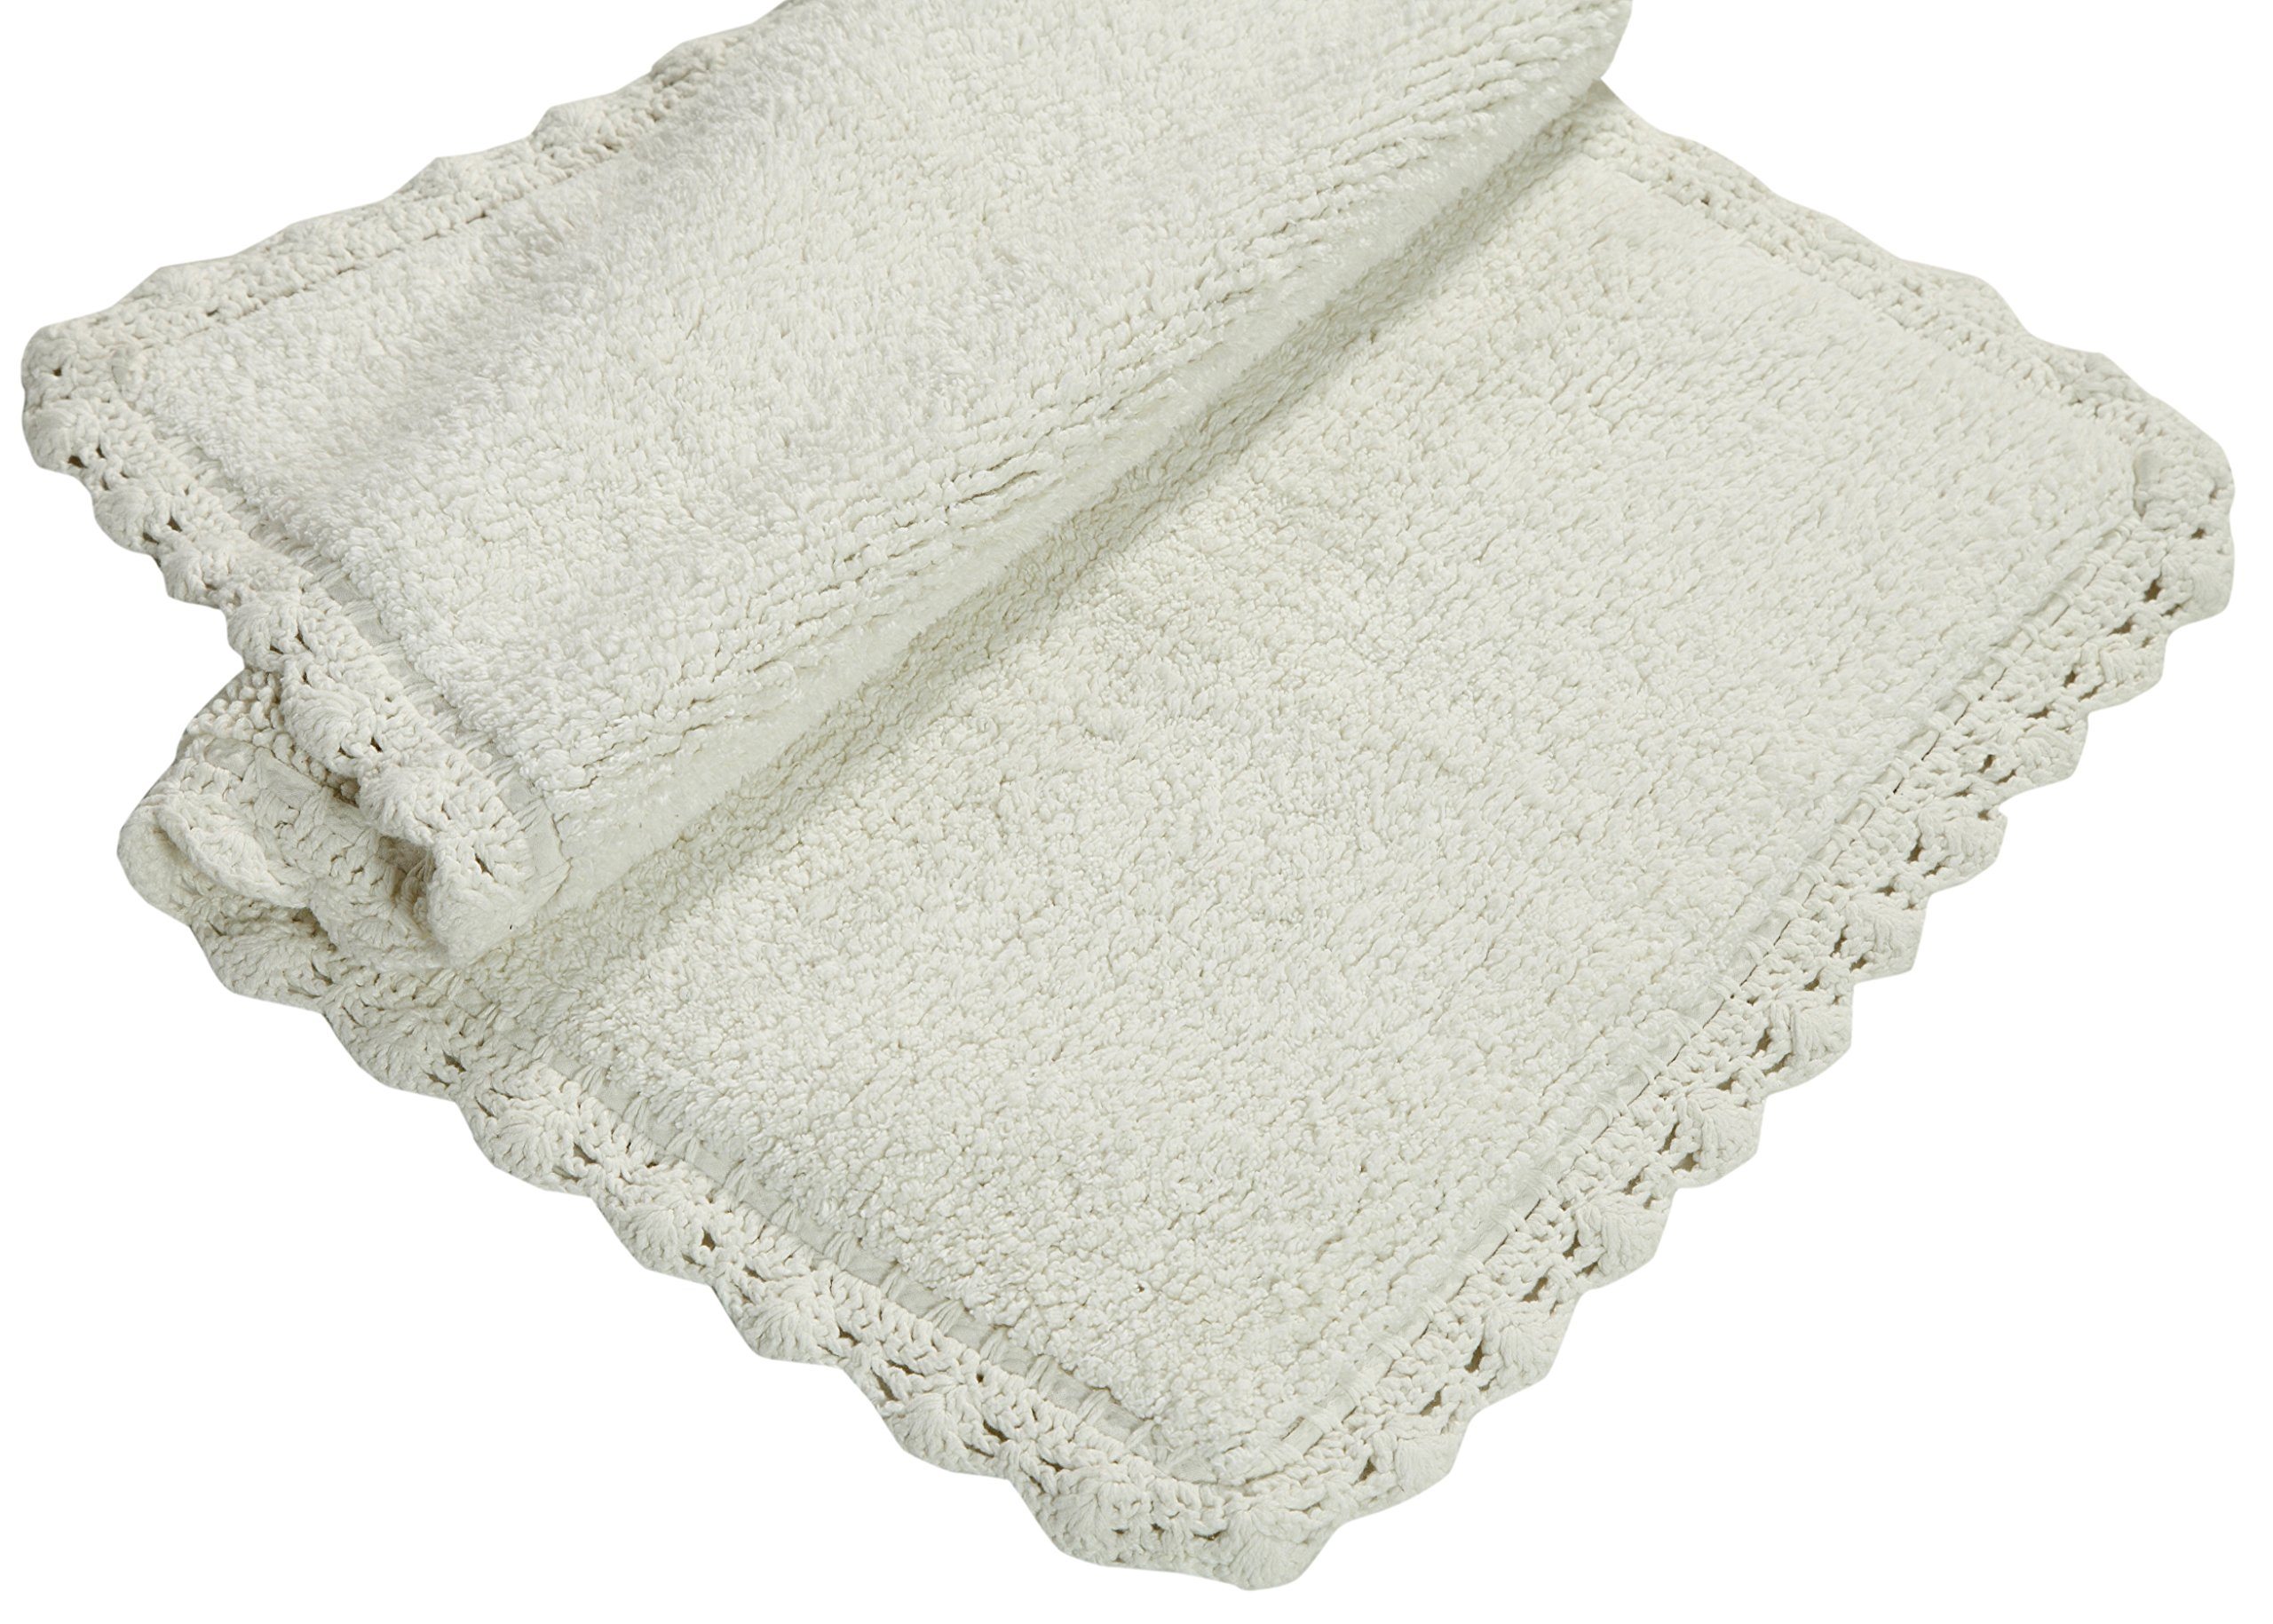 Chesapeake Merchandising Crochet 2-Piece Bath Rug Set, 21 by 34-Inch and 17 by 24-Inch, Ivory